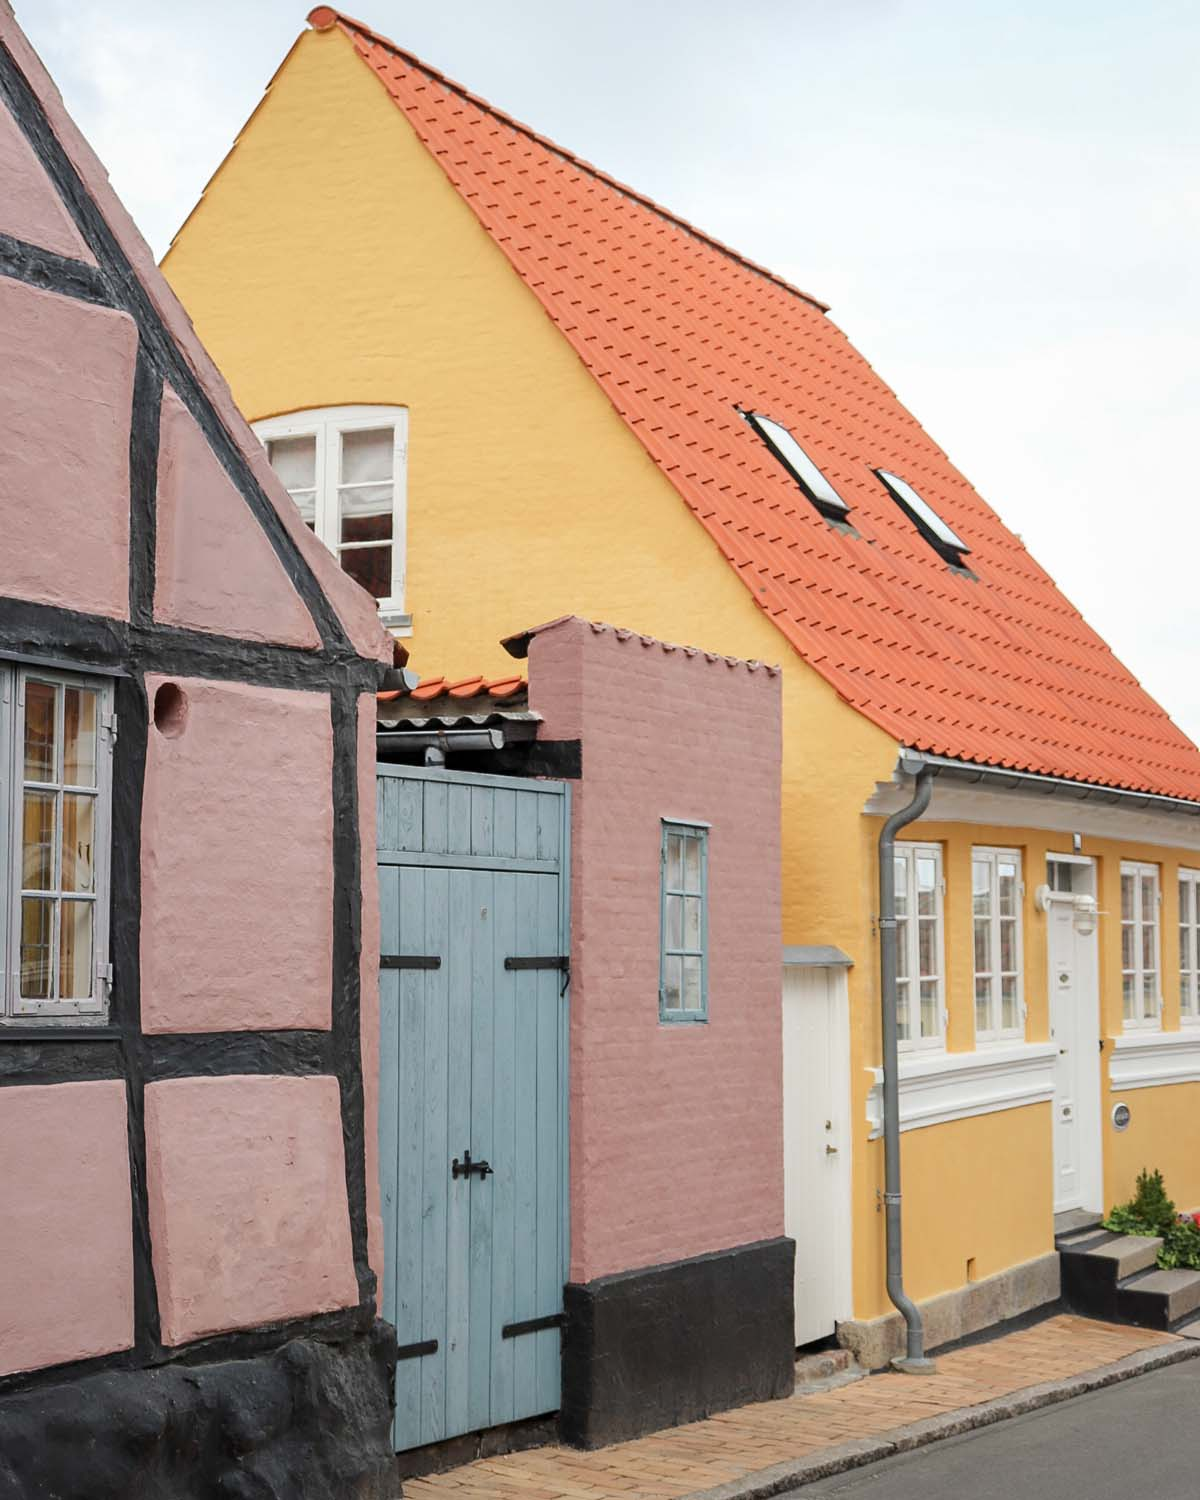 Faaborg: de mooiste stad op Funen in Denemarken - Map of Joy